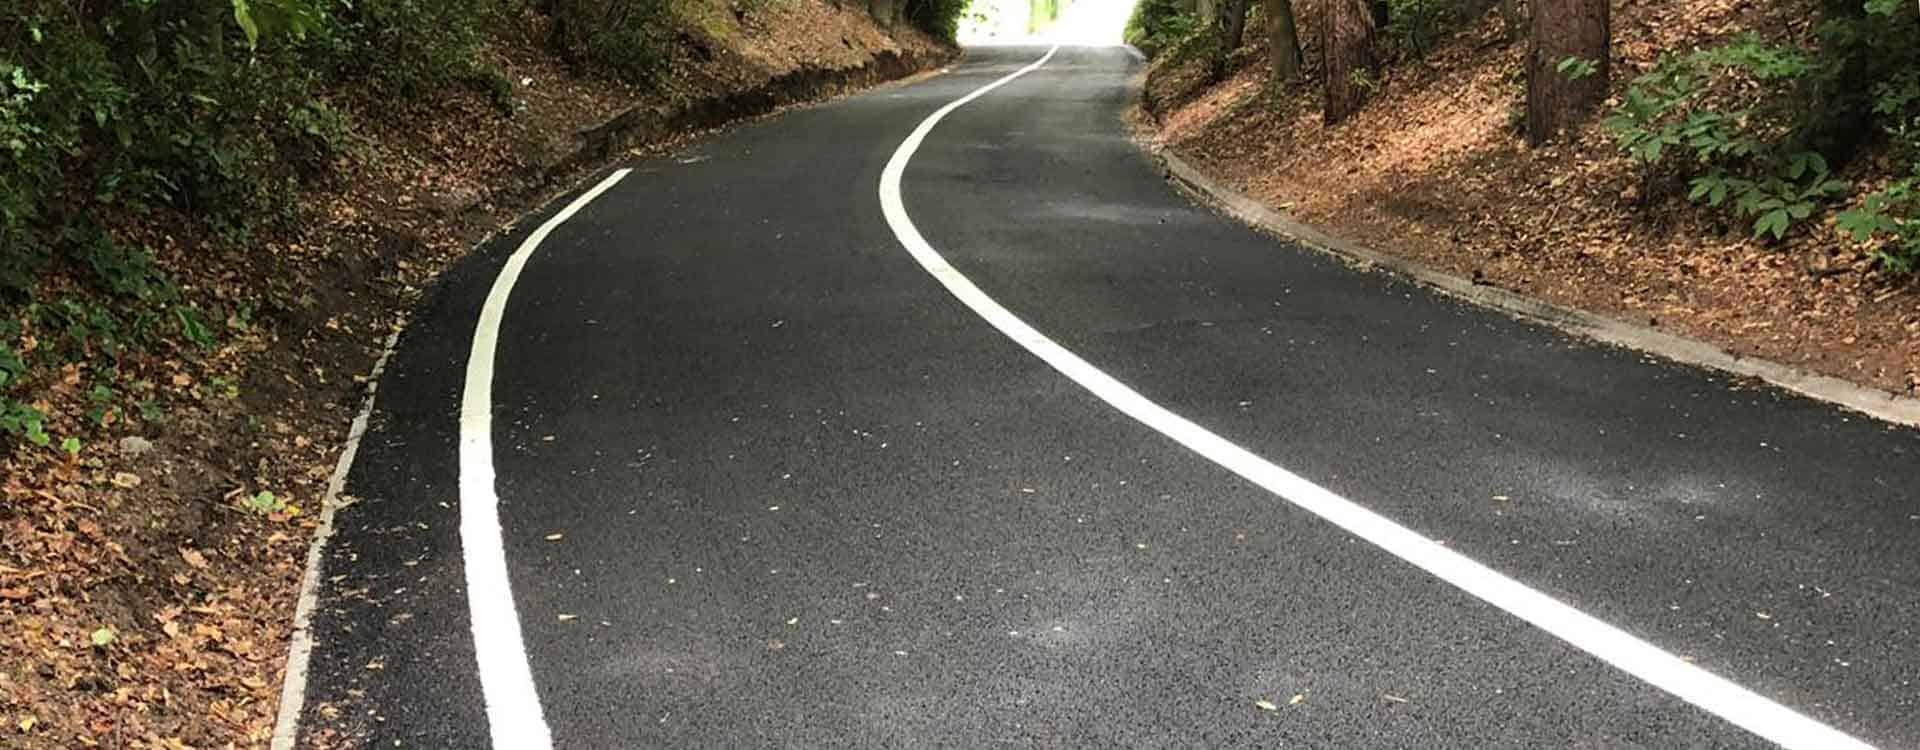 Private road new tarmac and white lining